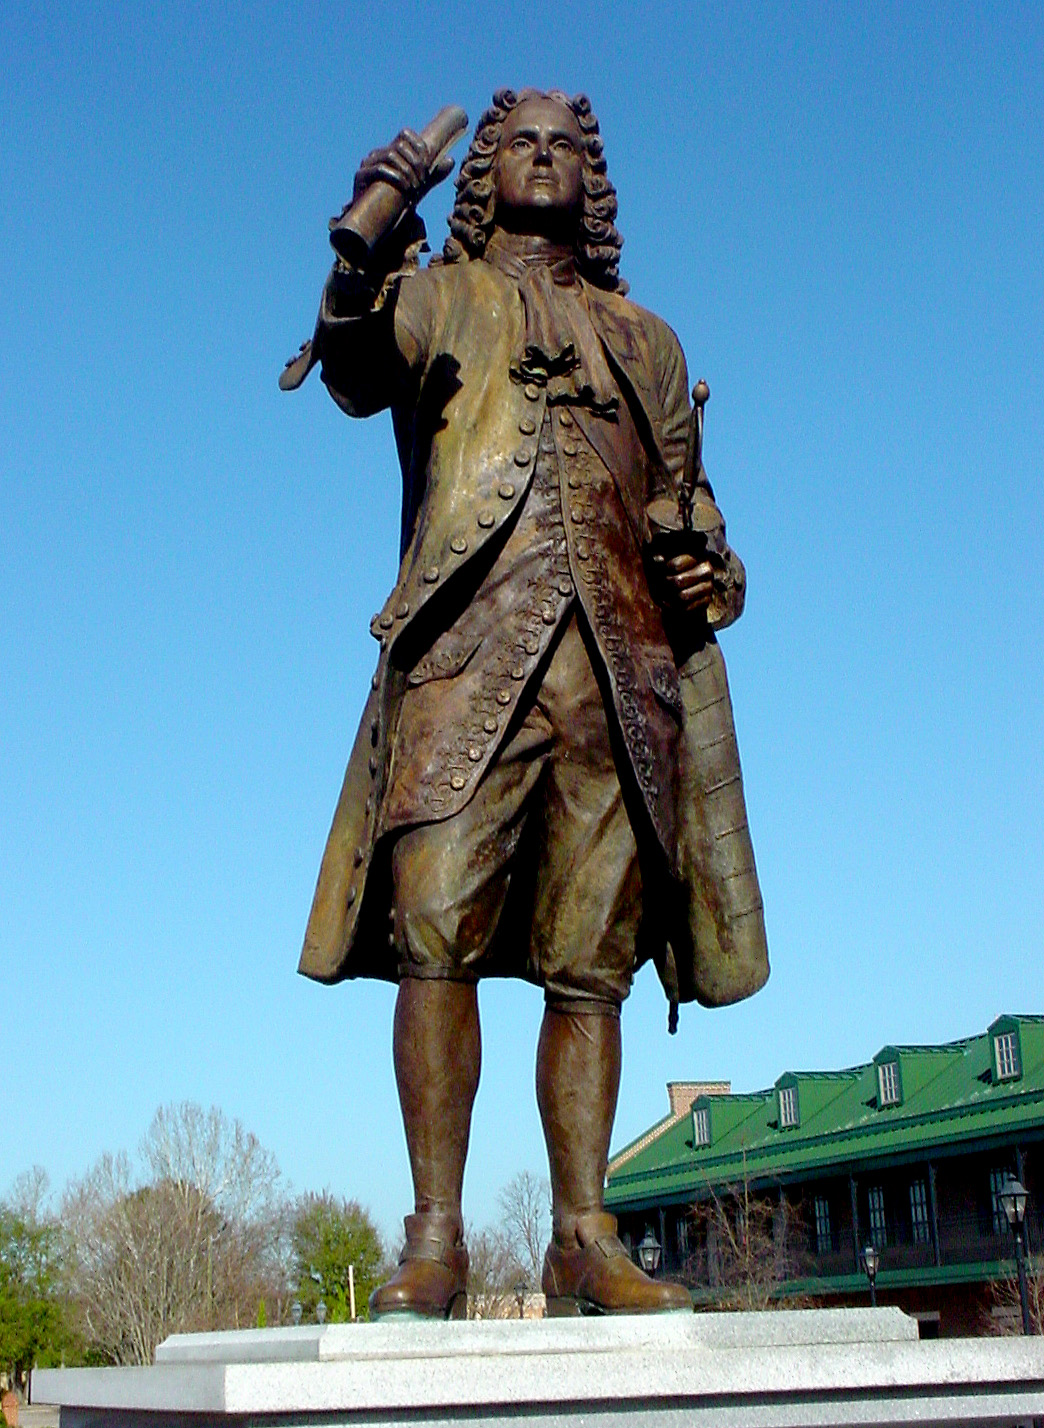 Statue of James Oglethorpe at the Augusta Common, an open space he personally designed when co-founding the city in 1735. Photo taken on February 3, 2006.